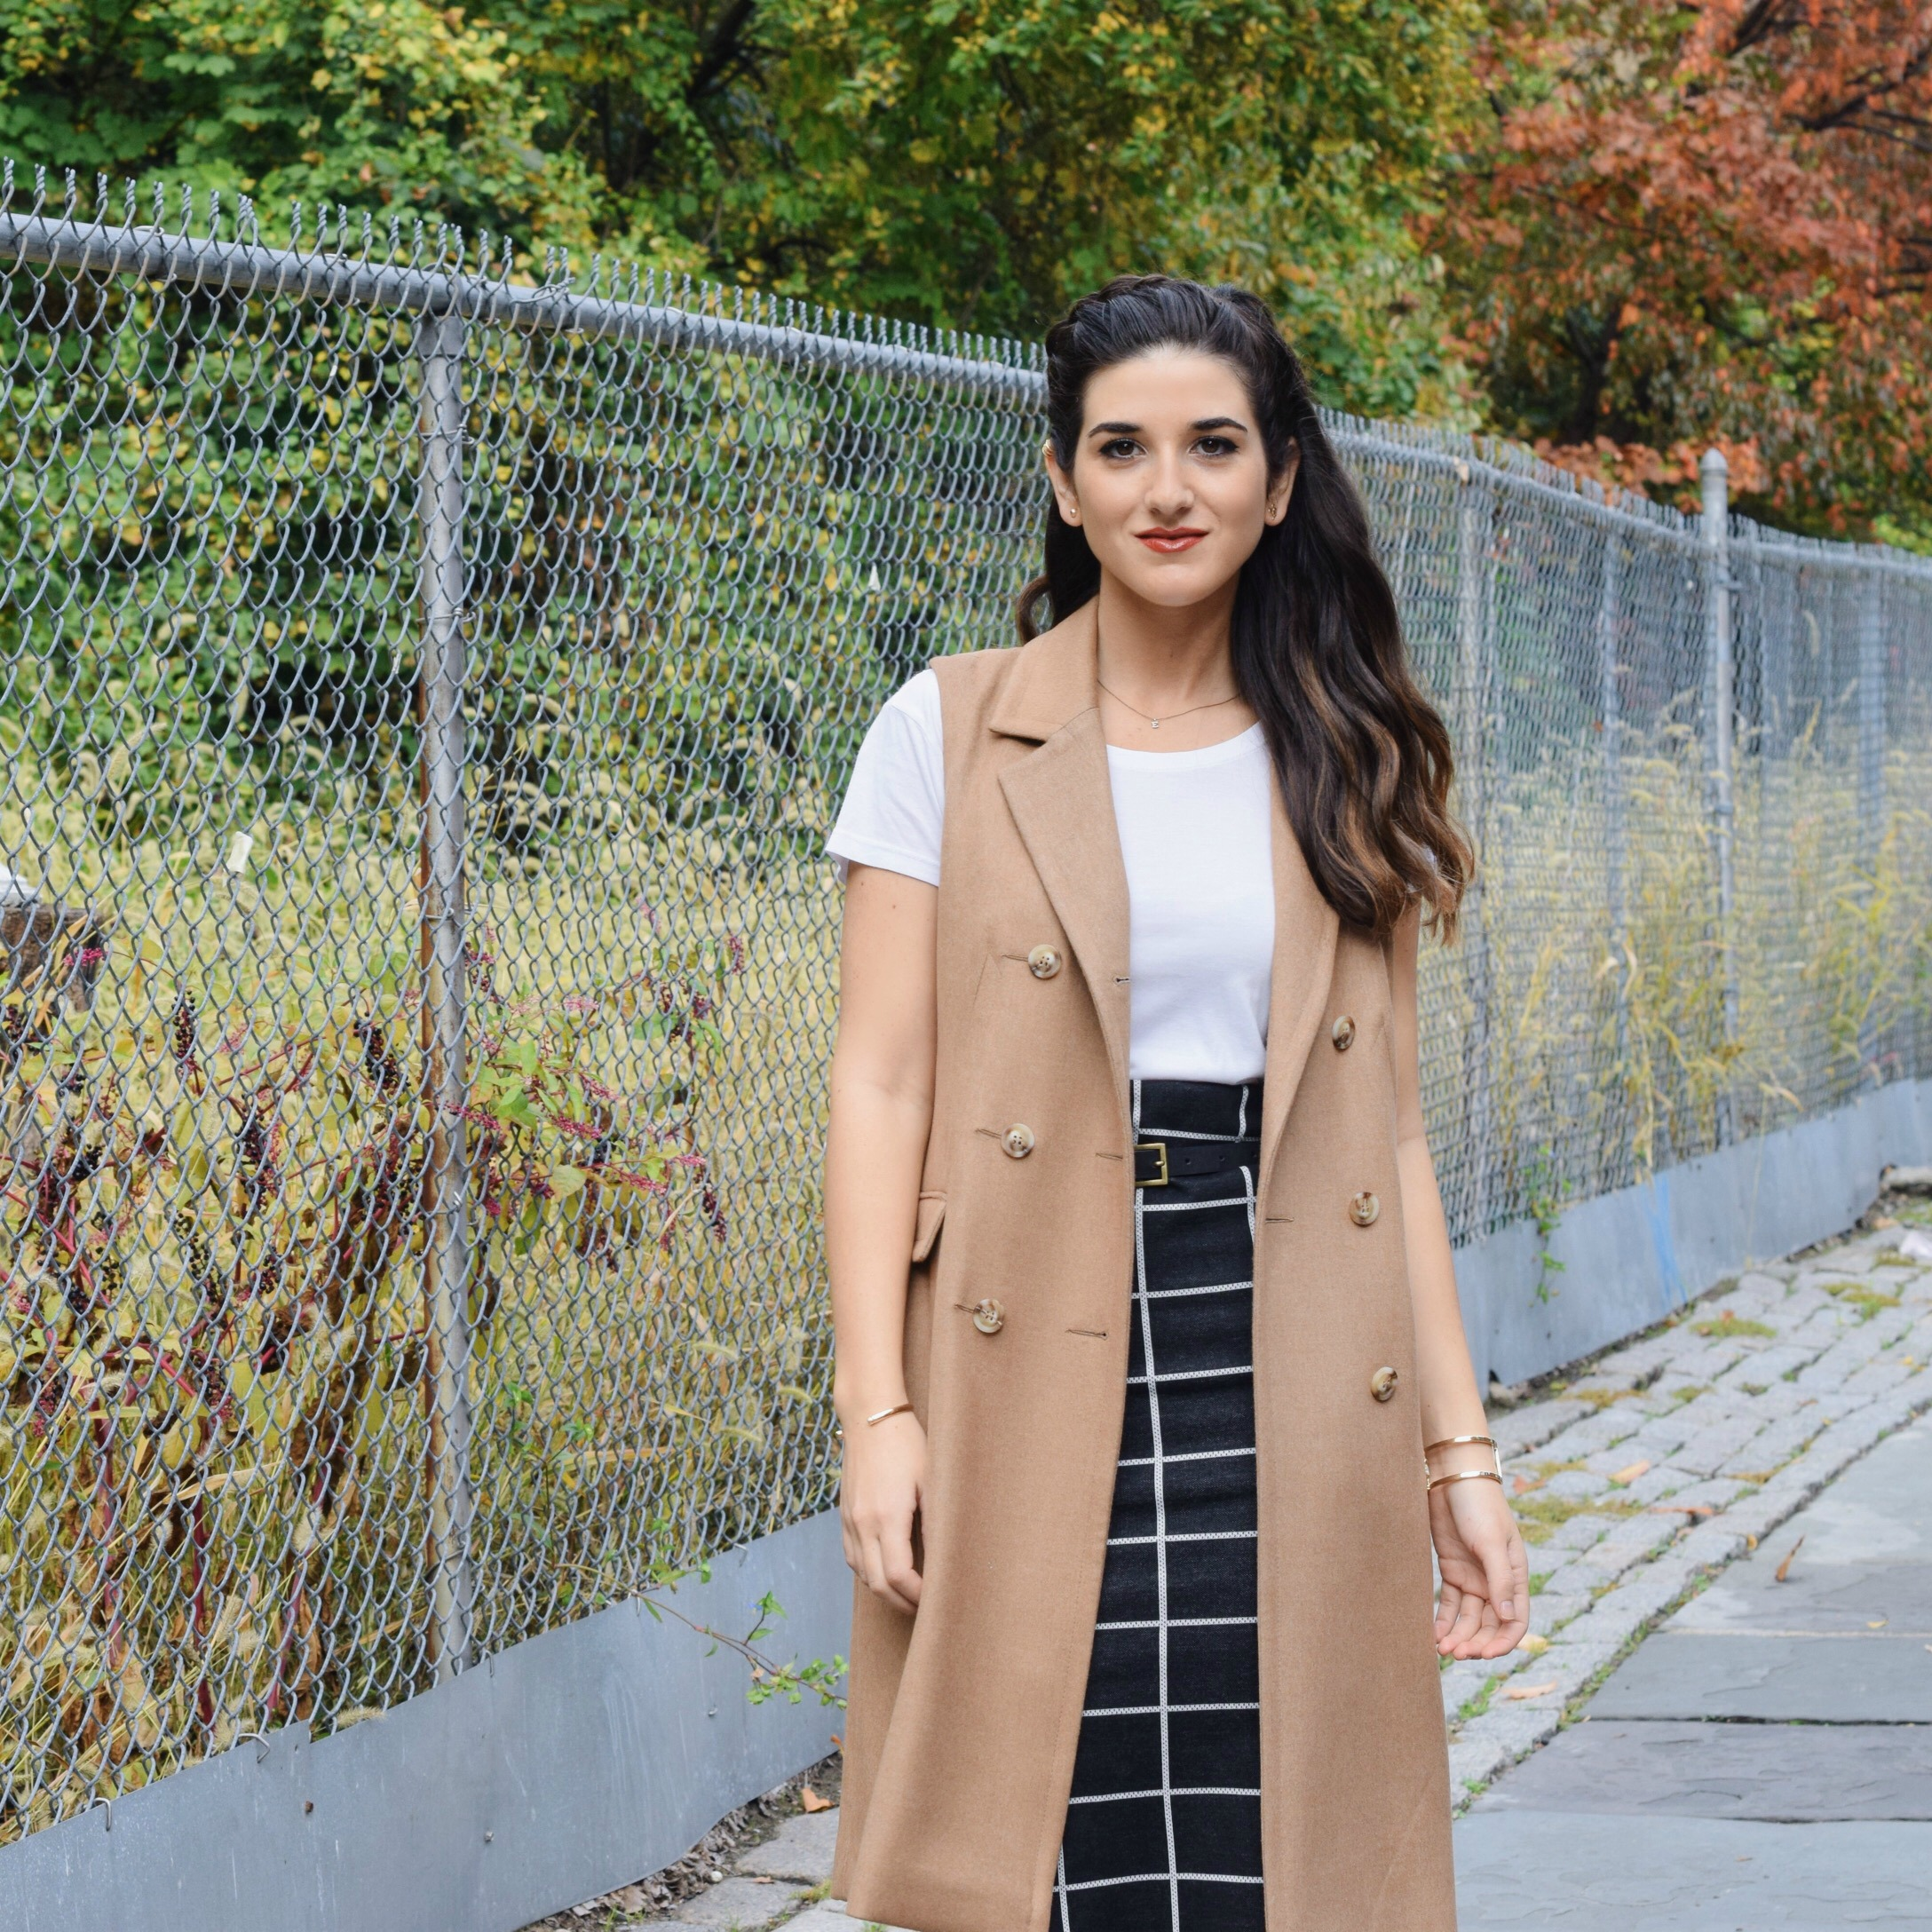 Sleeveless Coat Windowpane Skirt Oasis Louboutins & Love Fashion Blog Esther Santer NYC Street Style Blogger Vest Outfit OOTD  Braid Inspo Inspiration White Tee Windowpane Skirt Gold Jewelry Cuff Bracelet  Trendy Girl Shoes Black Booties Nordstrom.jpg